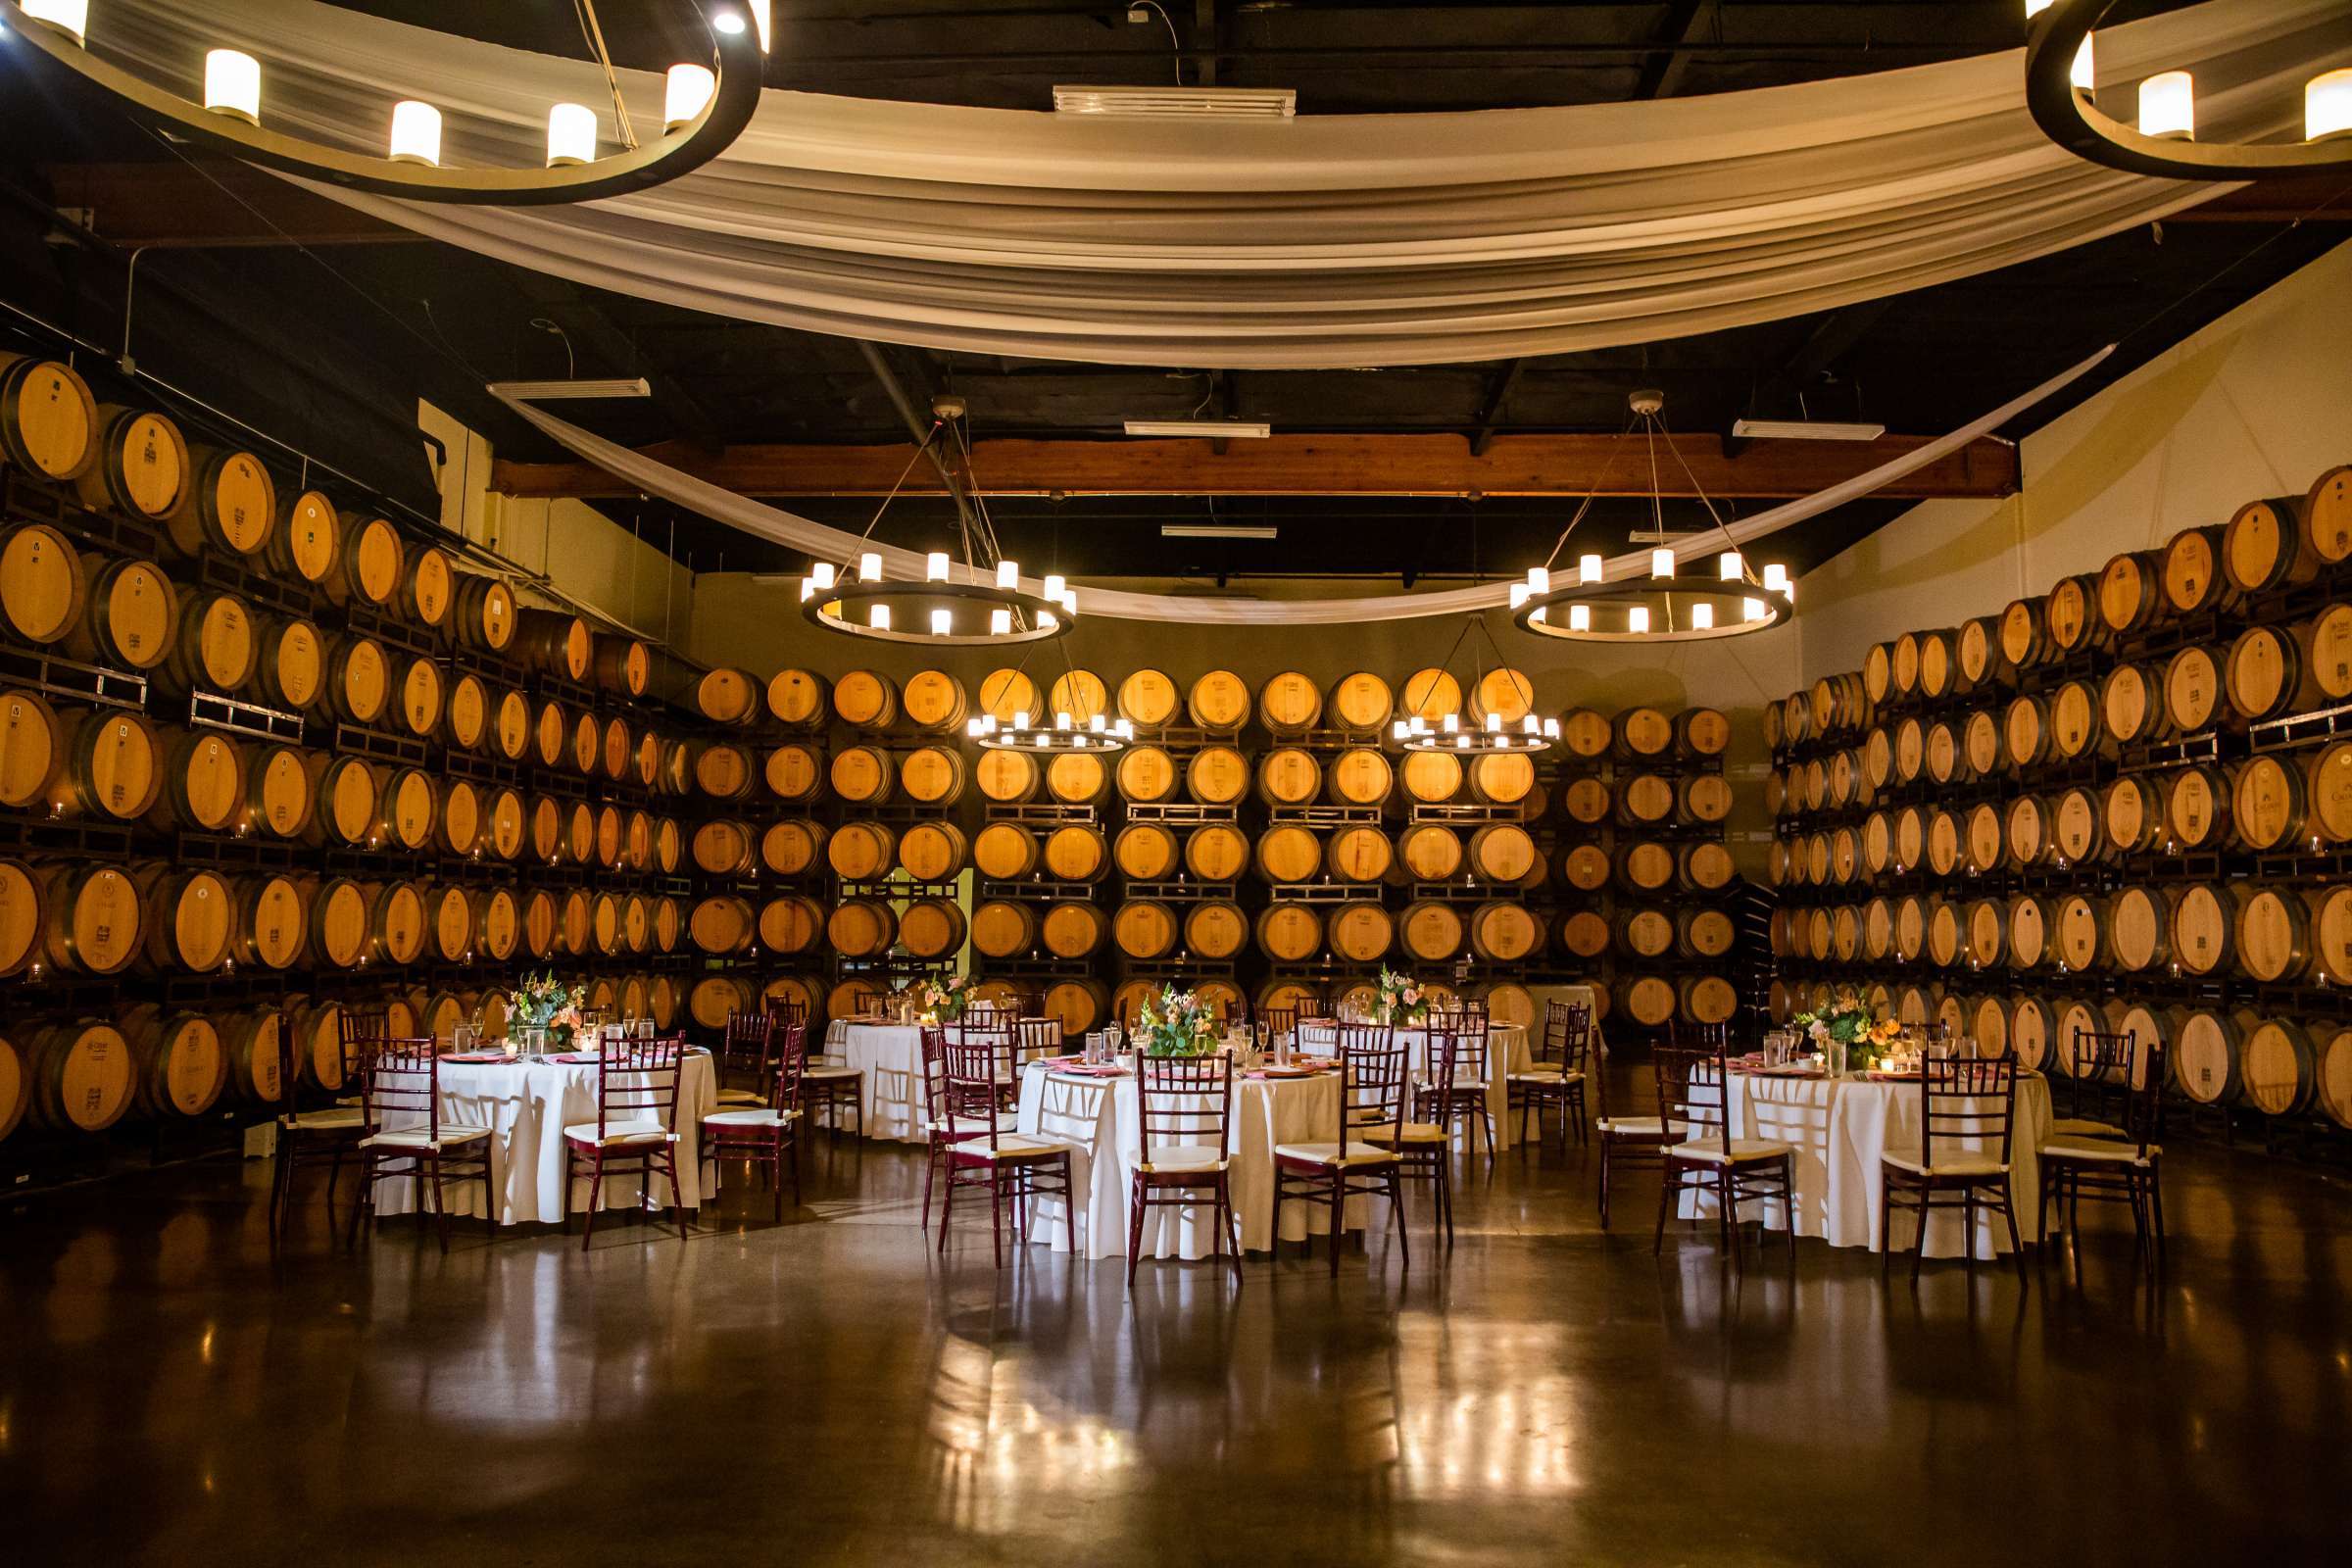 Callaway Vineyards & Winery Wedding coordinated by Michelle Garibay Events, Chelsea and Luis carlos Wedding Photo #169 by True Photography